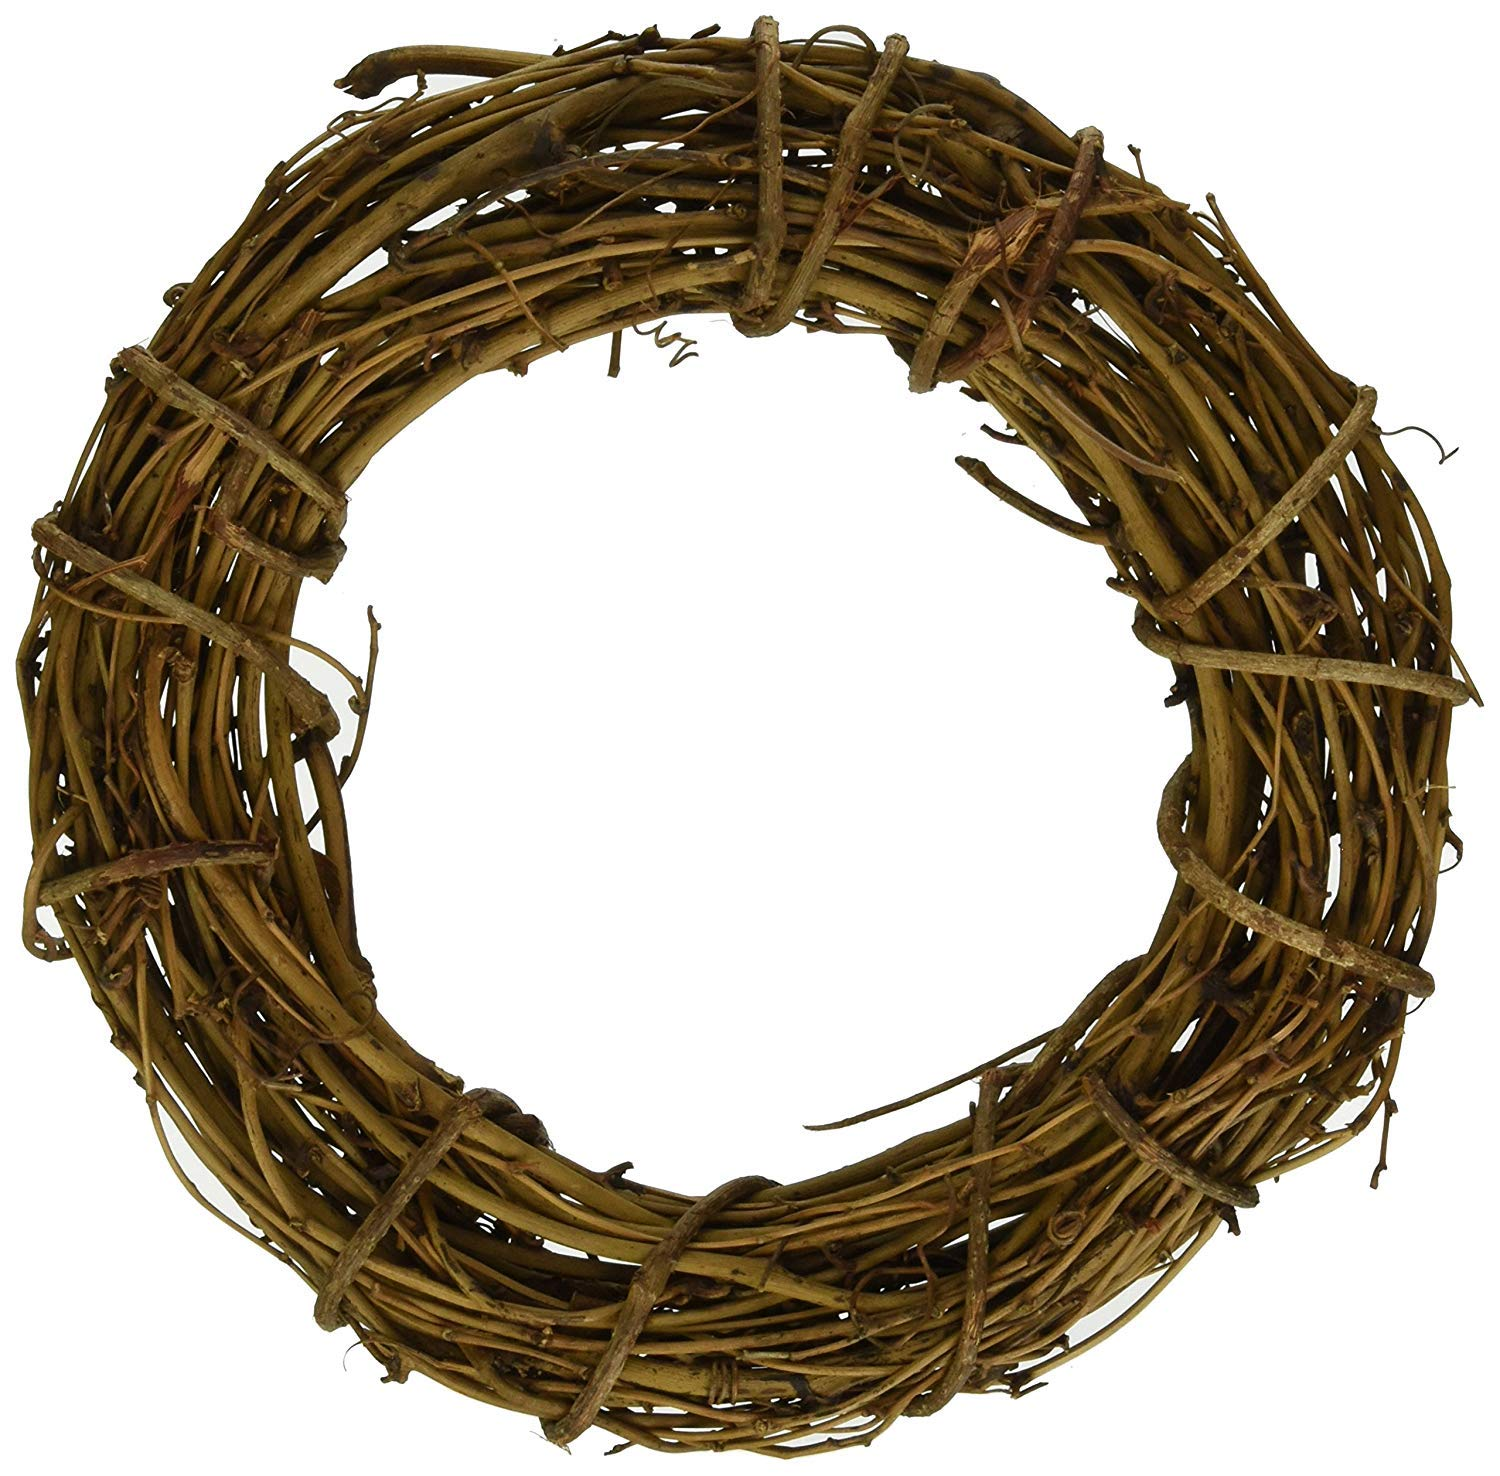 Natural-Grapevine-Wreath-Rustic-Ring-Wreath-DIY-Craft-Vines-Base-Grapevine-Roll-for-Rustic-Summer-Fall-Christmas-Wreath-Door-Garland-Home-Wedding-Party-Decoration-Gift-Hanging-Decor-Wreaths-Supplies